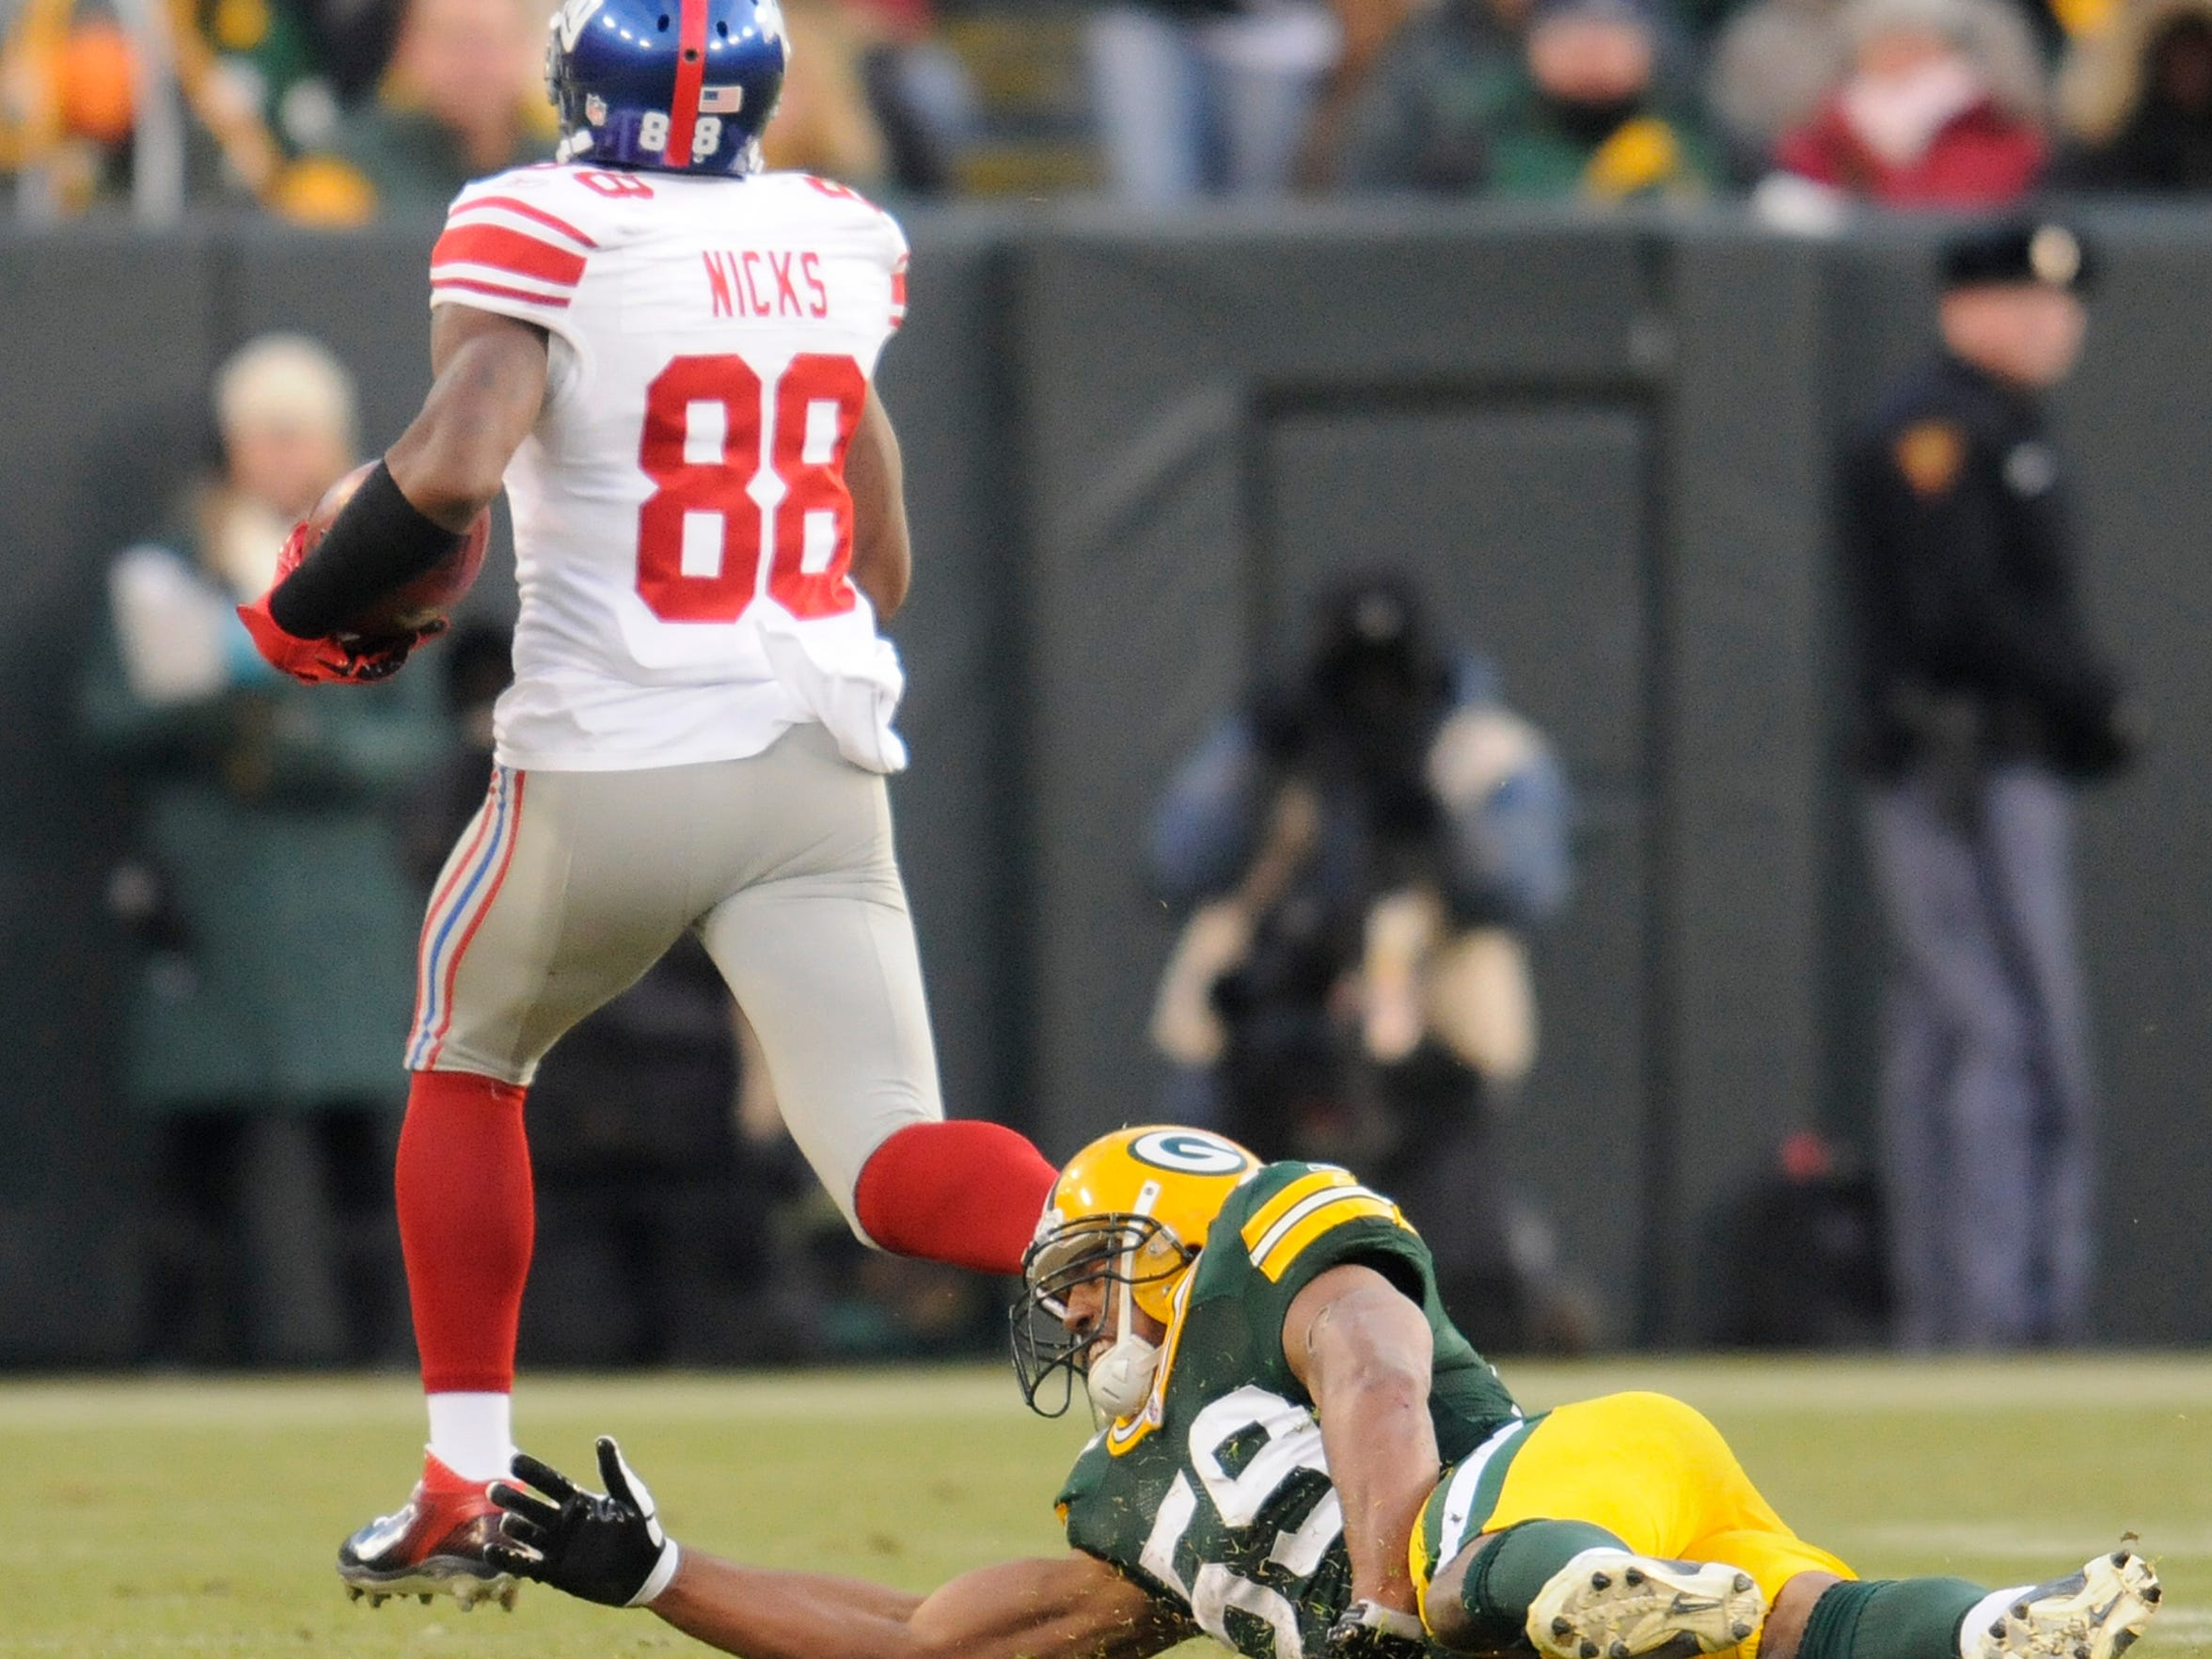 Green Bay Packers linebacker Brad Jones (59) falls as receiver Hakeem Nicks (88) runs away in the first quarter against the New York Giants during the NFC divisional playoff game at Lambeau Field in Green Bay on Sunday, Jan. 15, 2012.